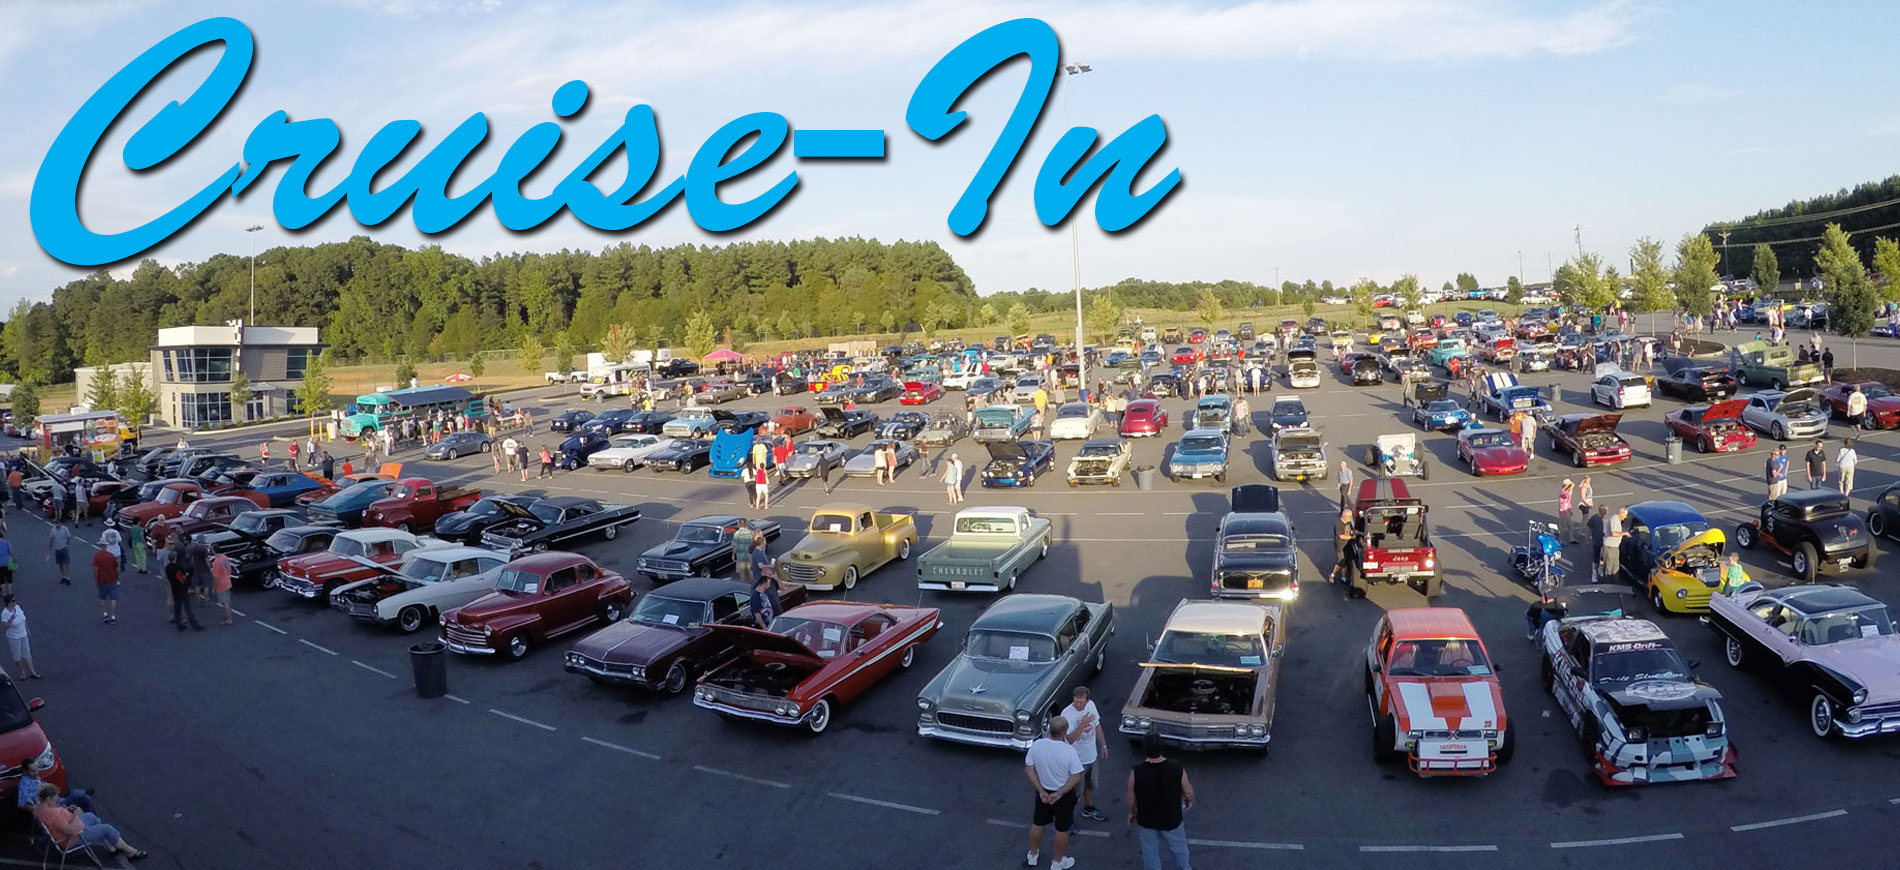 FREE Cruise-In, Tuesday, July 18, 6-8 p.m.